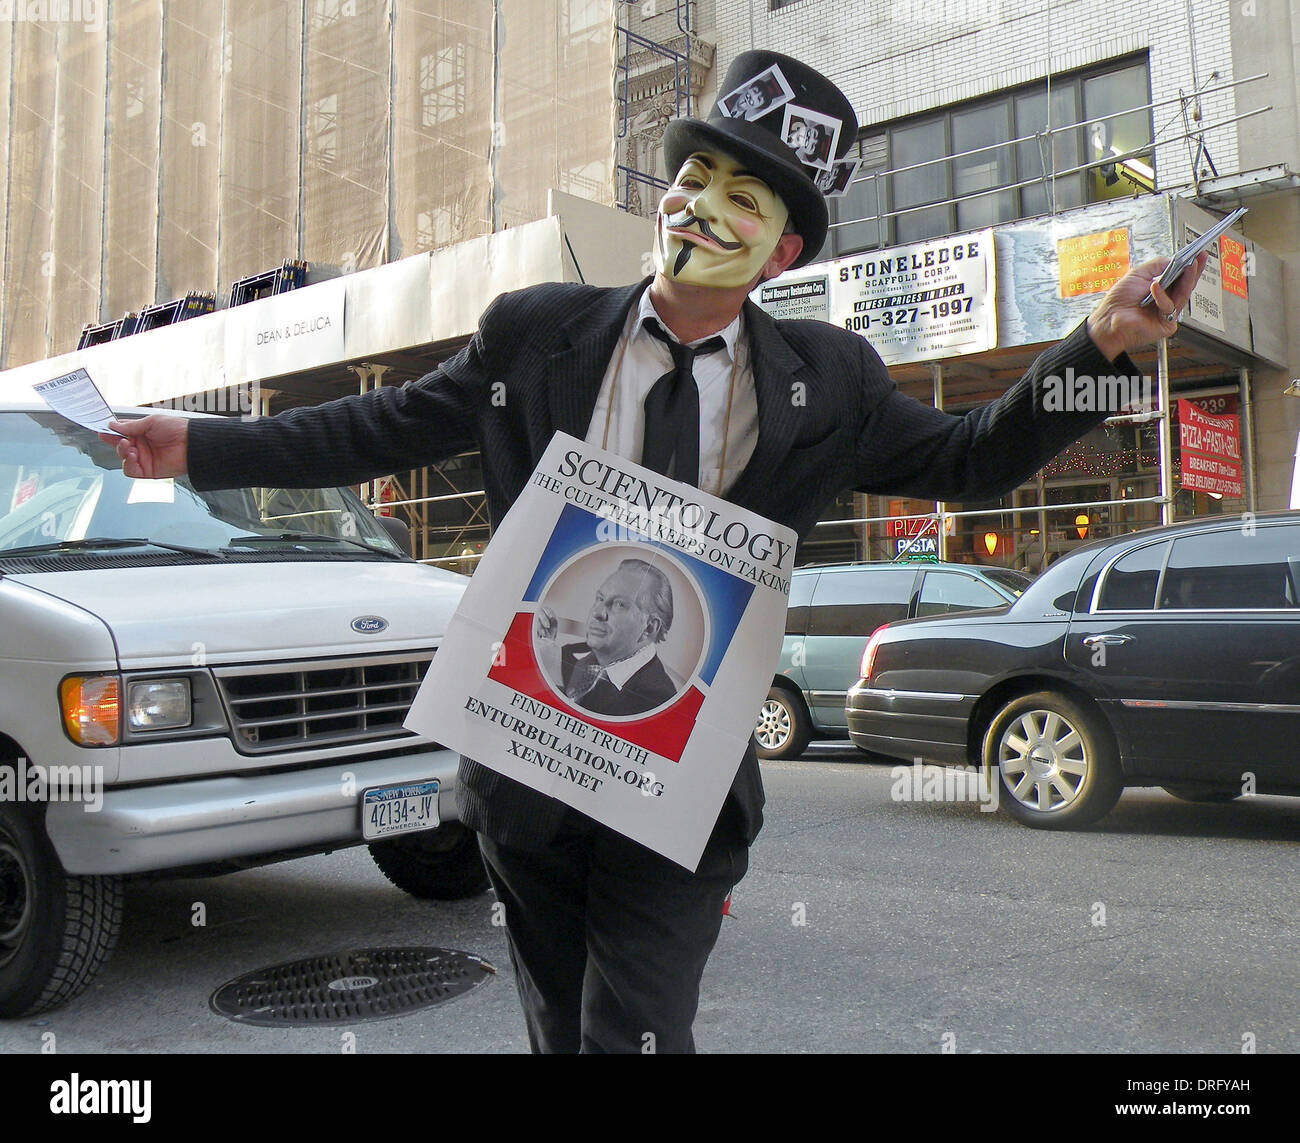 Portrait of a masked man in New York City's theater district protesting against Scientology - Stock Image